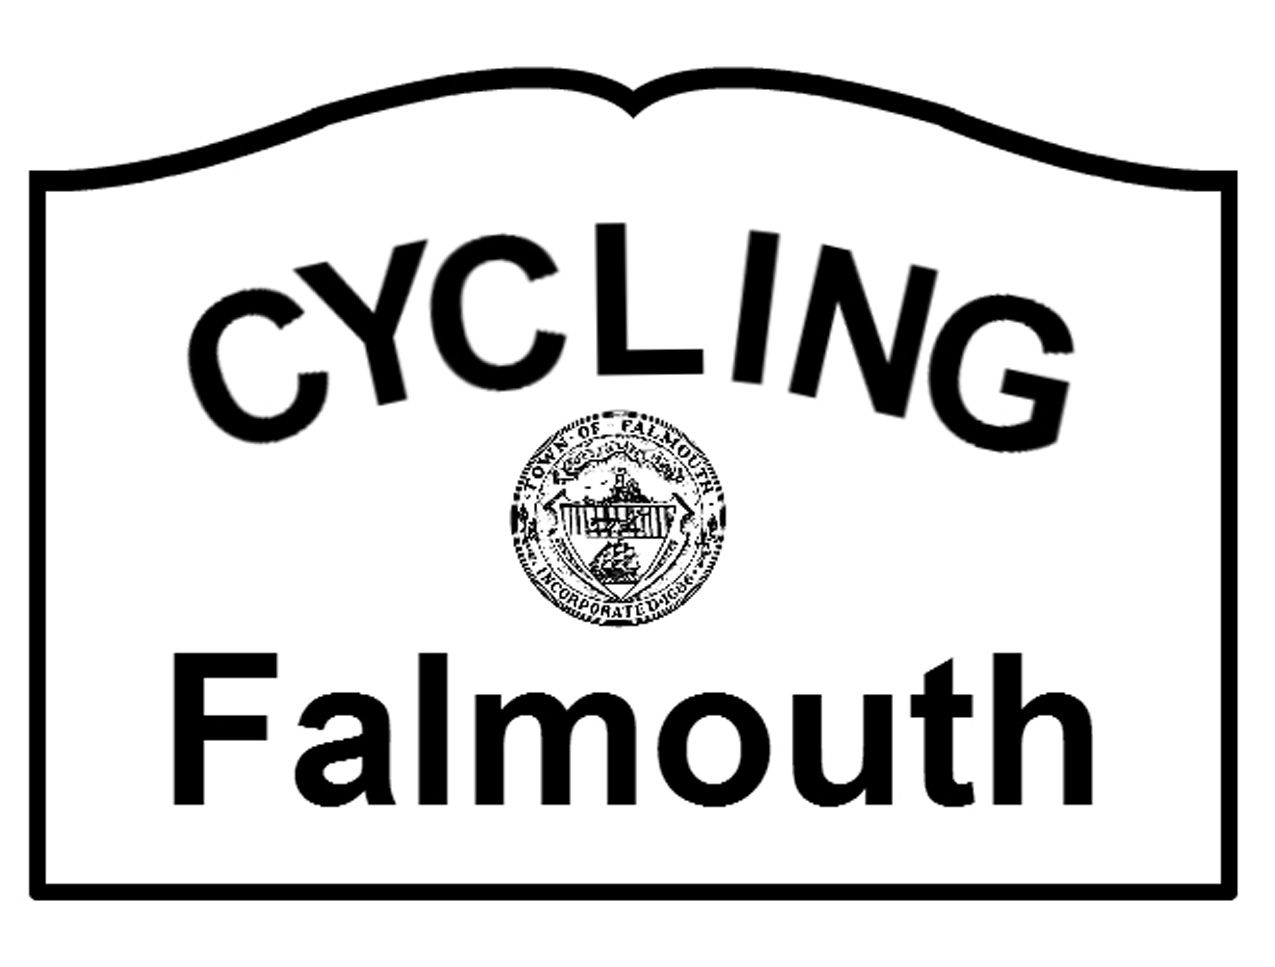 Cycling Falmouth: Make Main Street More Bike-Friendly